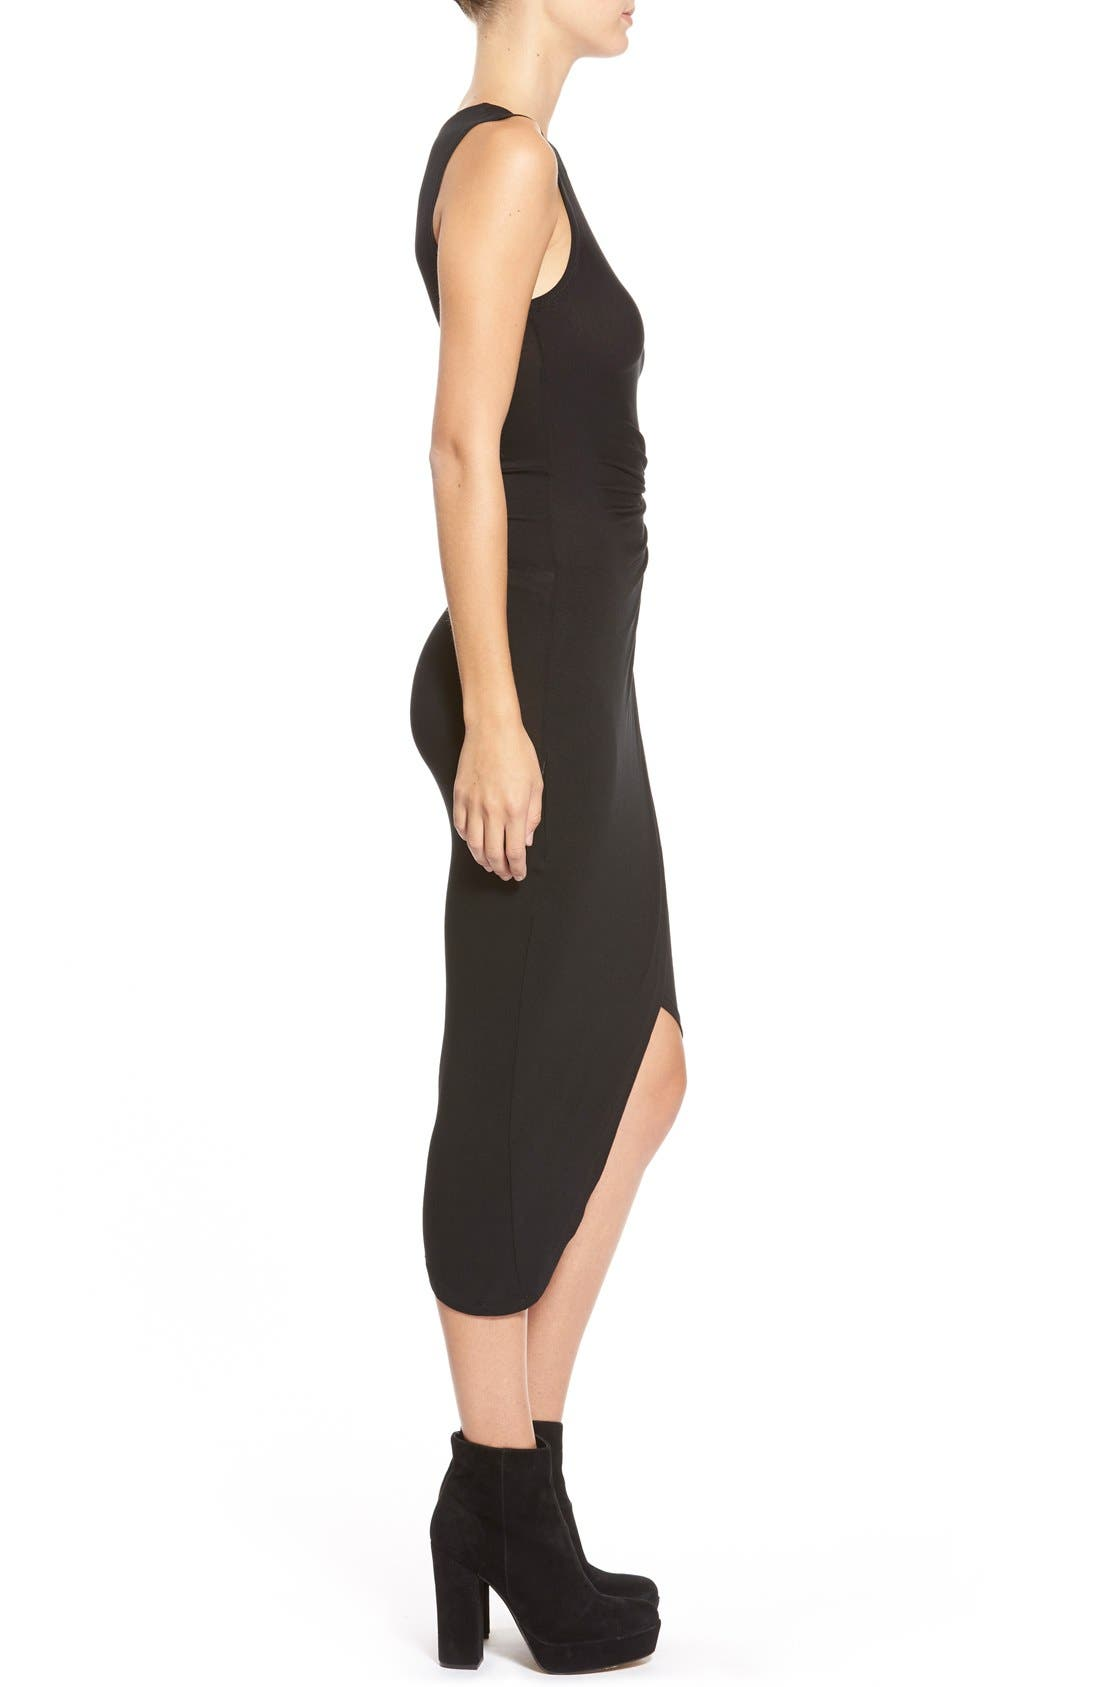 ASTR Knotted Body-Con Dress,                             Alternate thumbnail 4, color,                             001